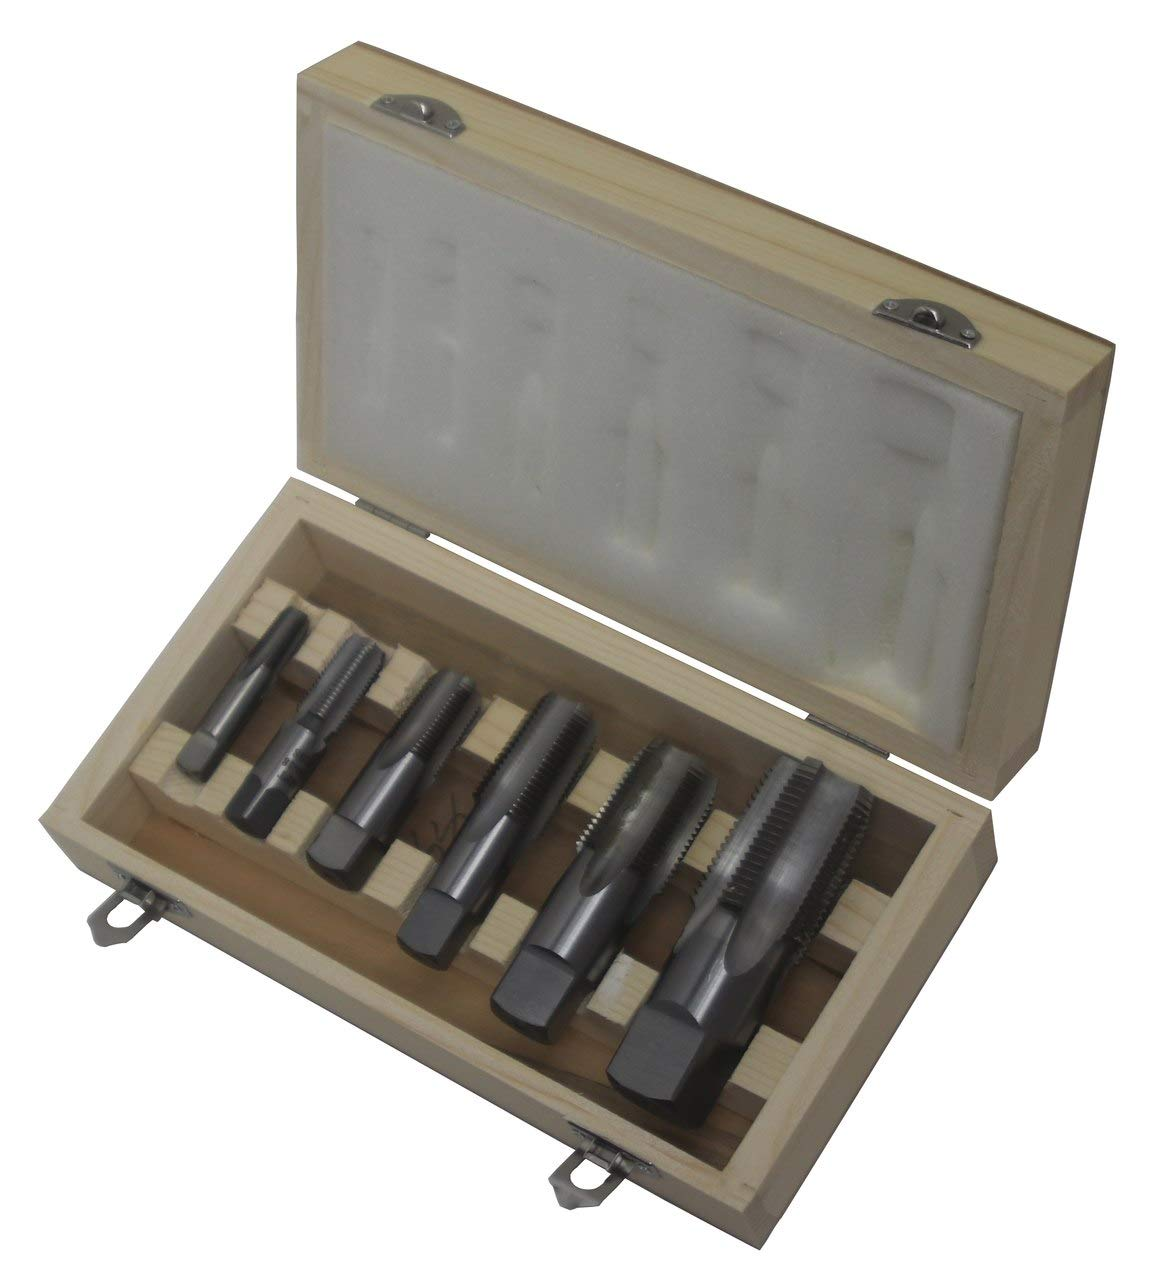 Drill America 6 Piece NPT Pipe Tap, Carbon Steel, DWTPT Series Set 1/4'', 3/8'', 1/2'', 3/4'', 1'' and 1-1/4'' in Wooden Case